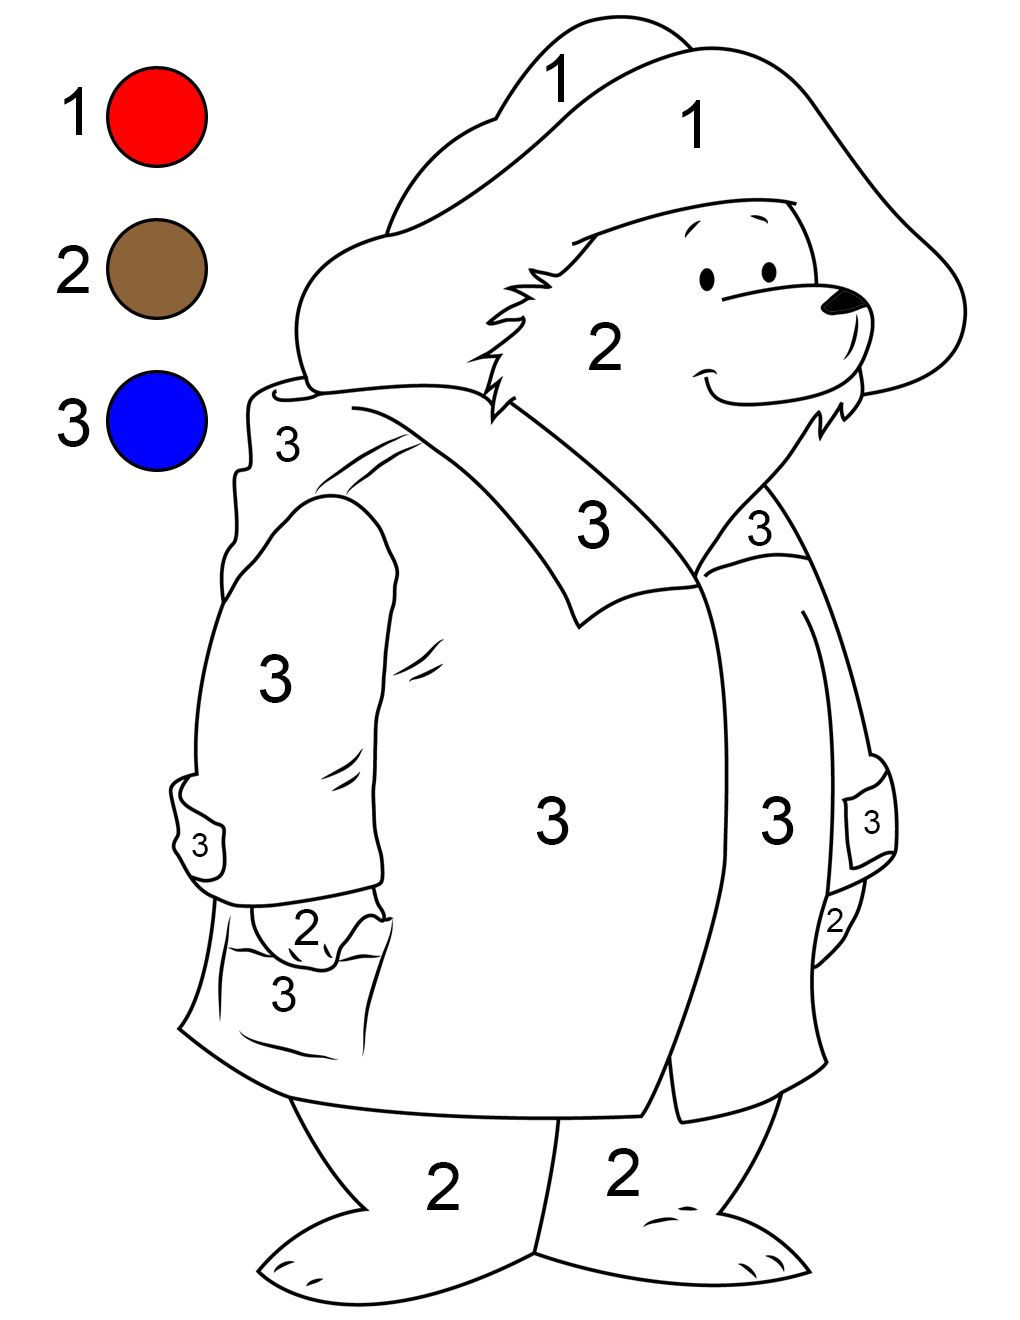 Paddington Paint By Number Printable Preschool Colors Alphabet Activities Preschool Preschool Activities